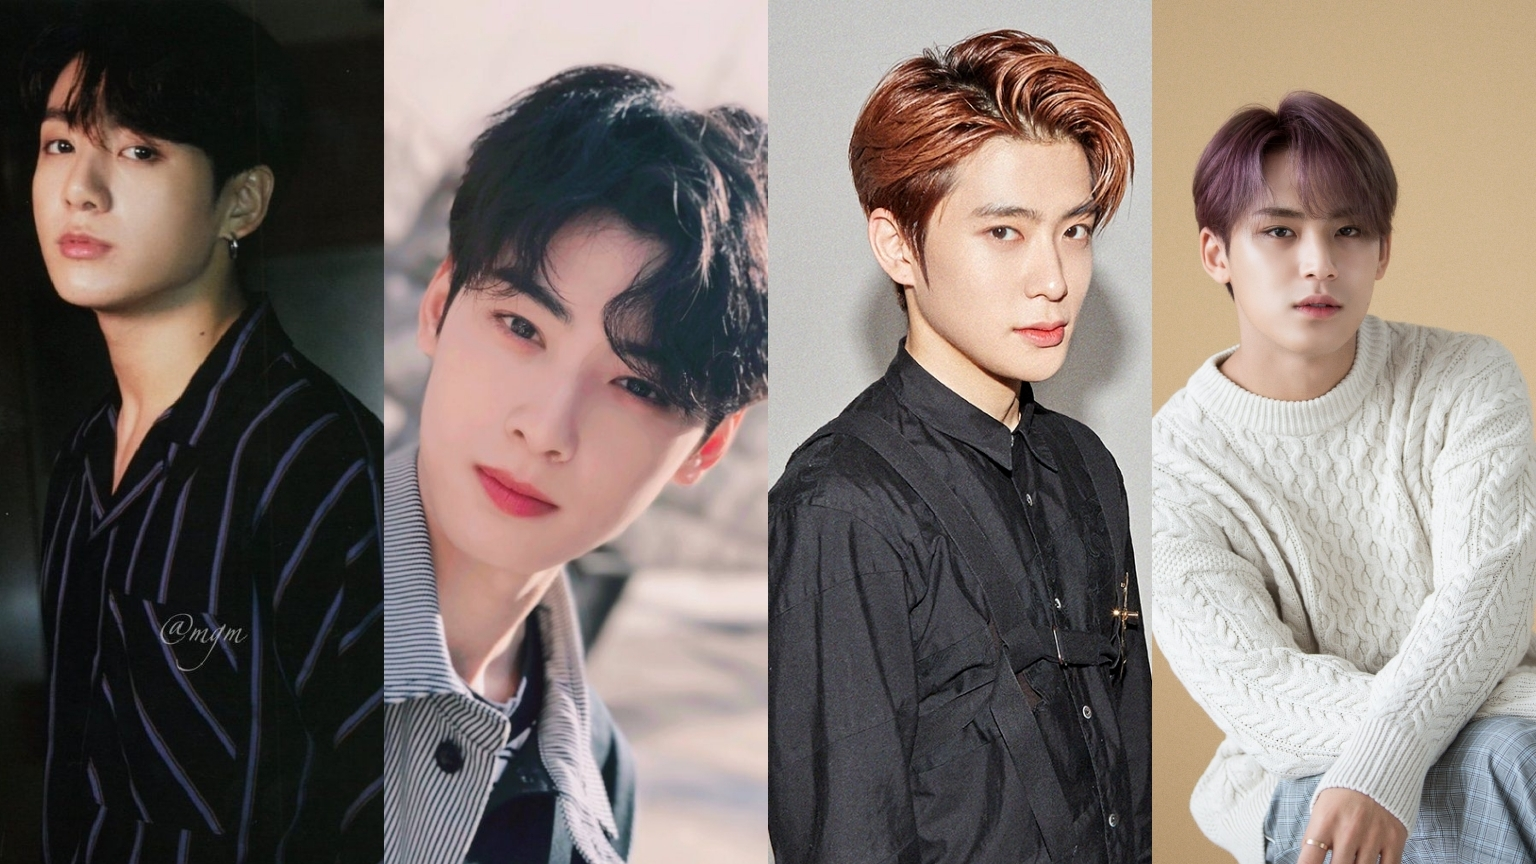 Korean Netizen Comments After Jungkook, Cha Eun Woo, Jaehyun and Mingyu Reported Went to Clubs in Itaewon